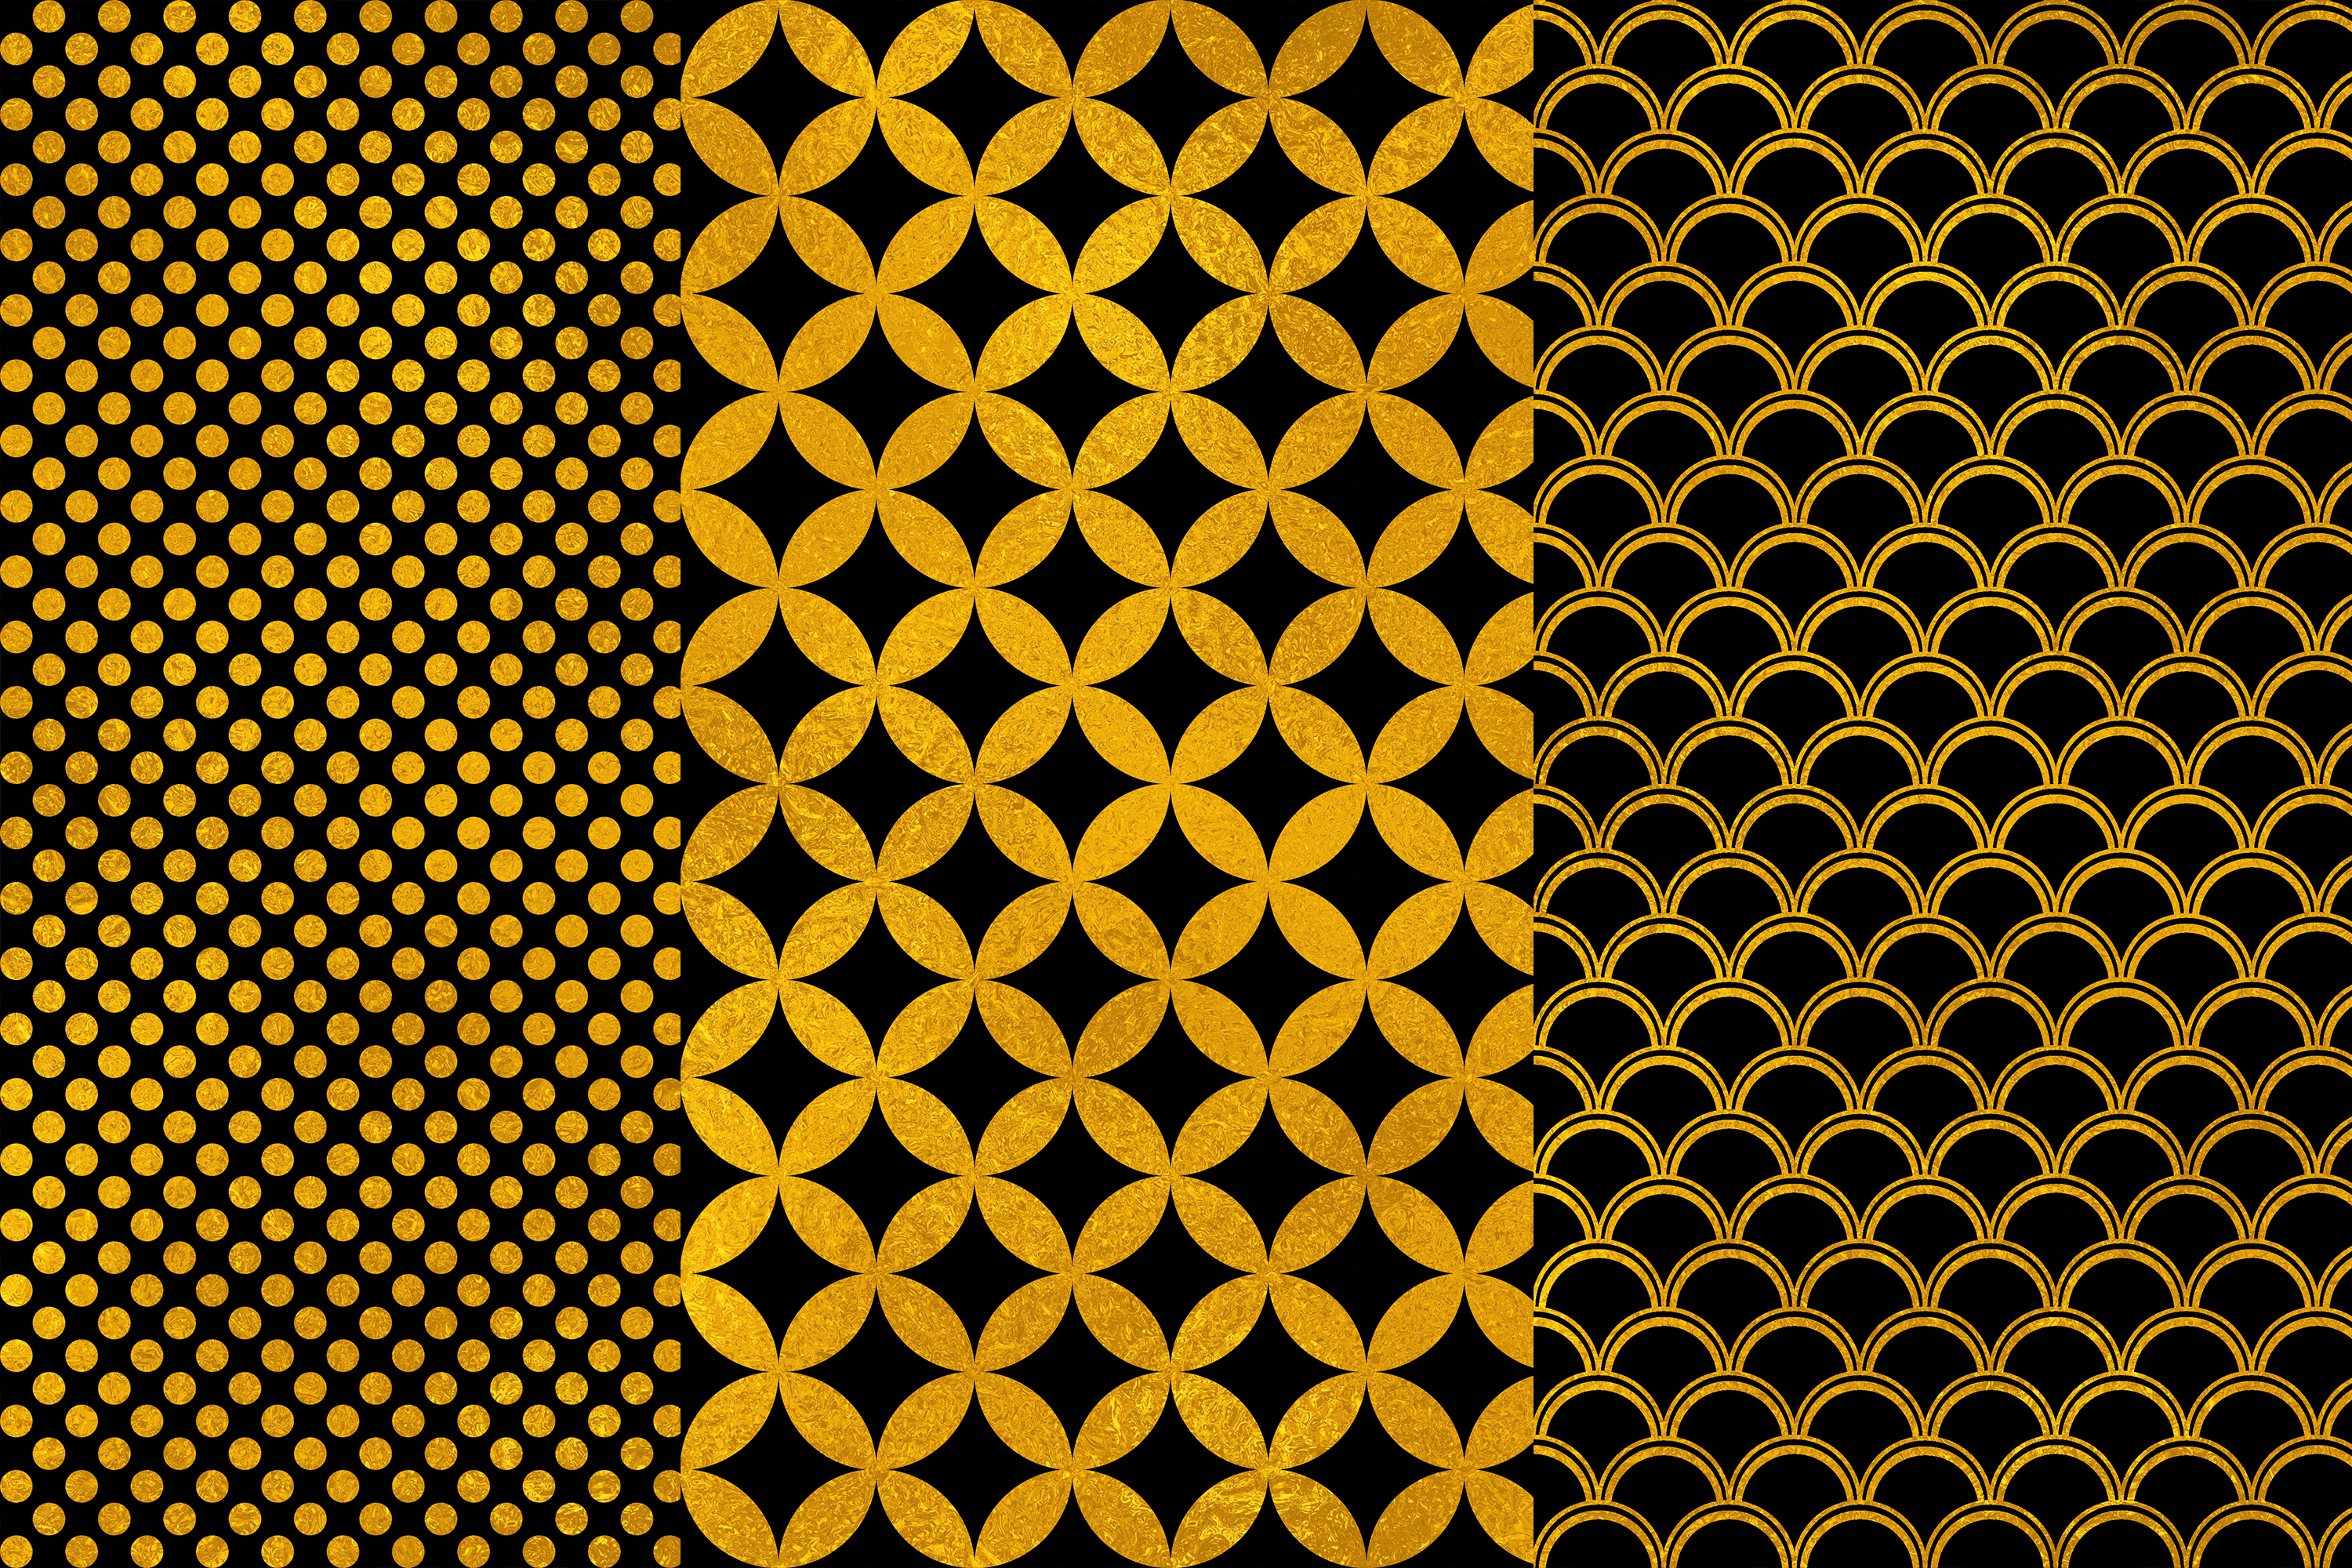 Black Gold Digital Papers, Gold Geometric Seamless Patterns example image 2